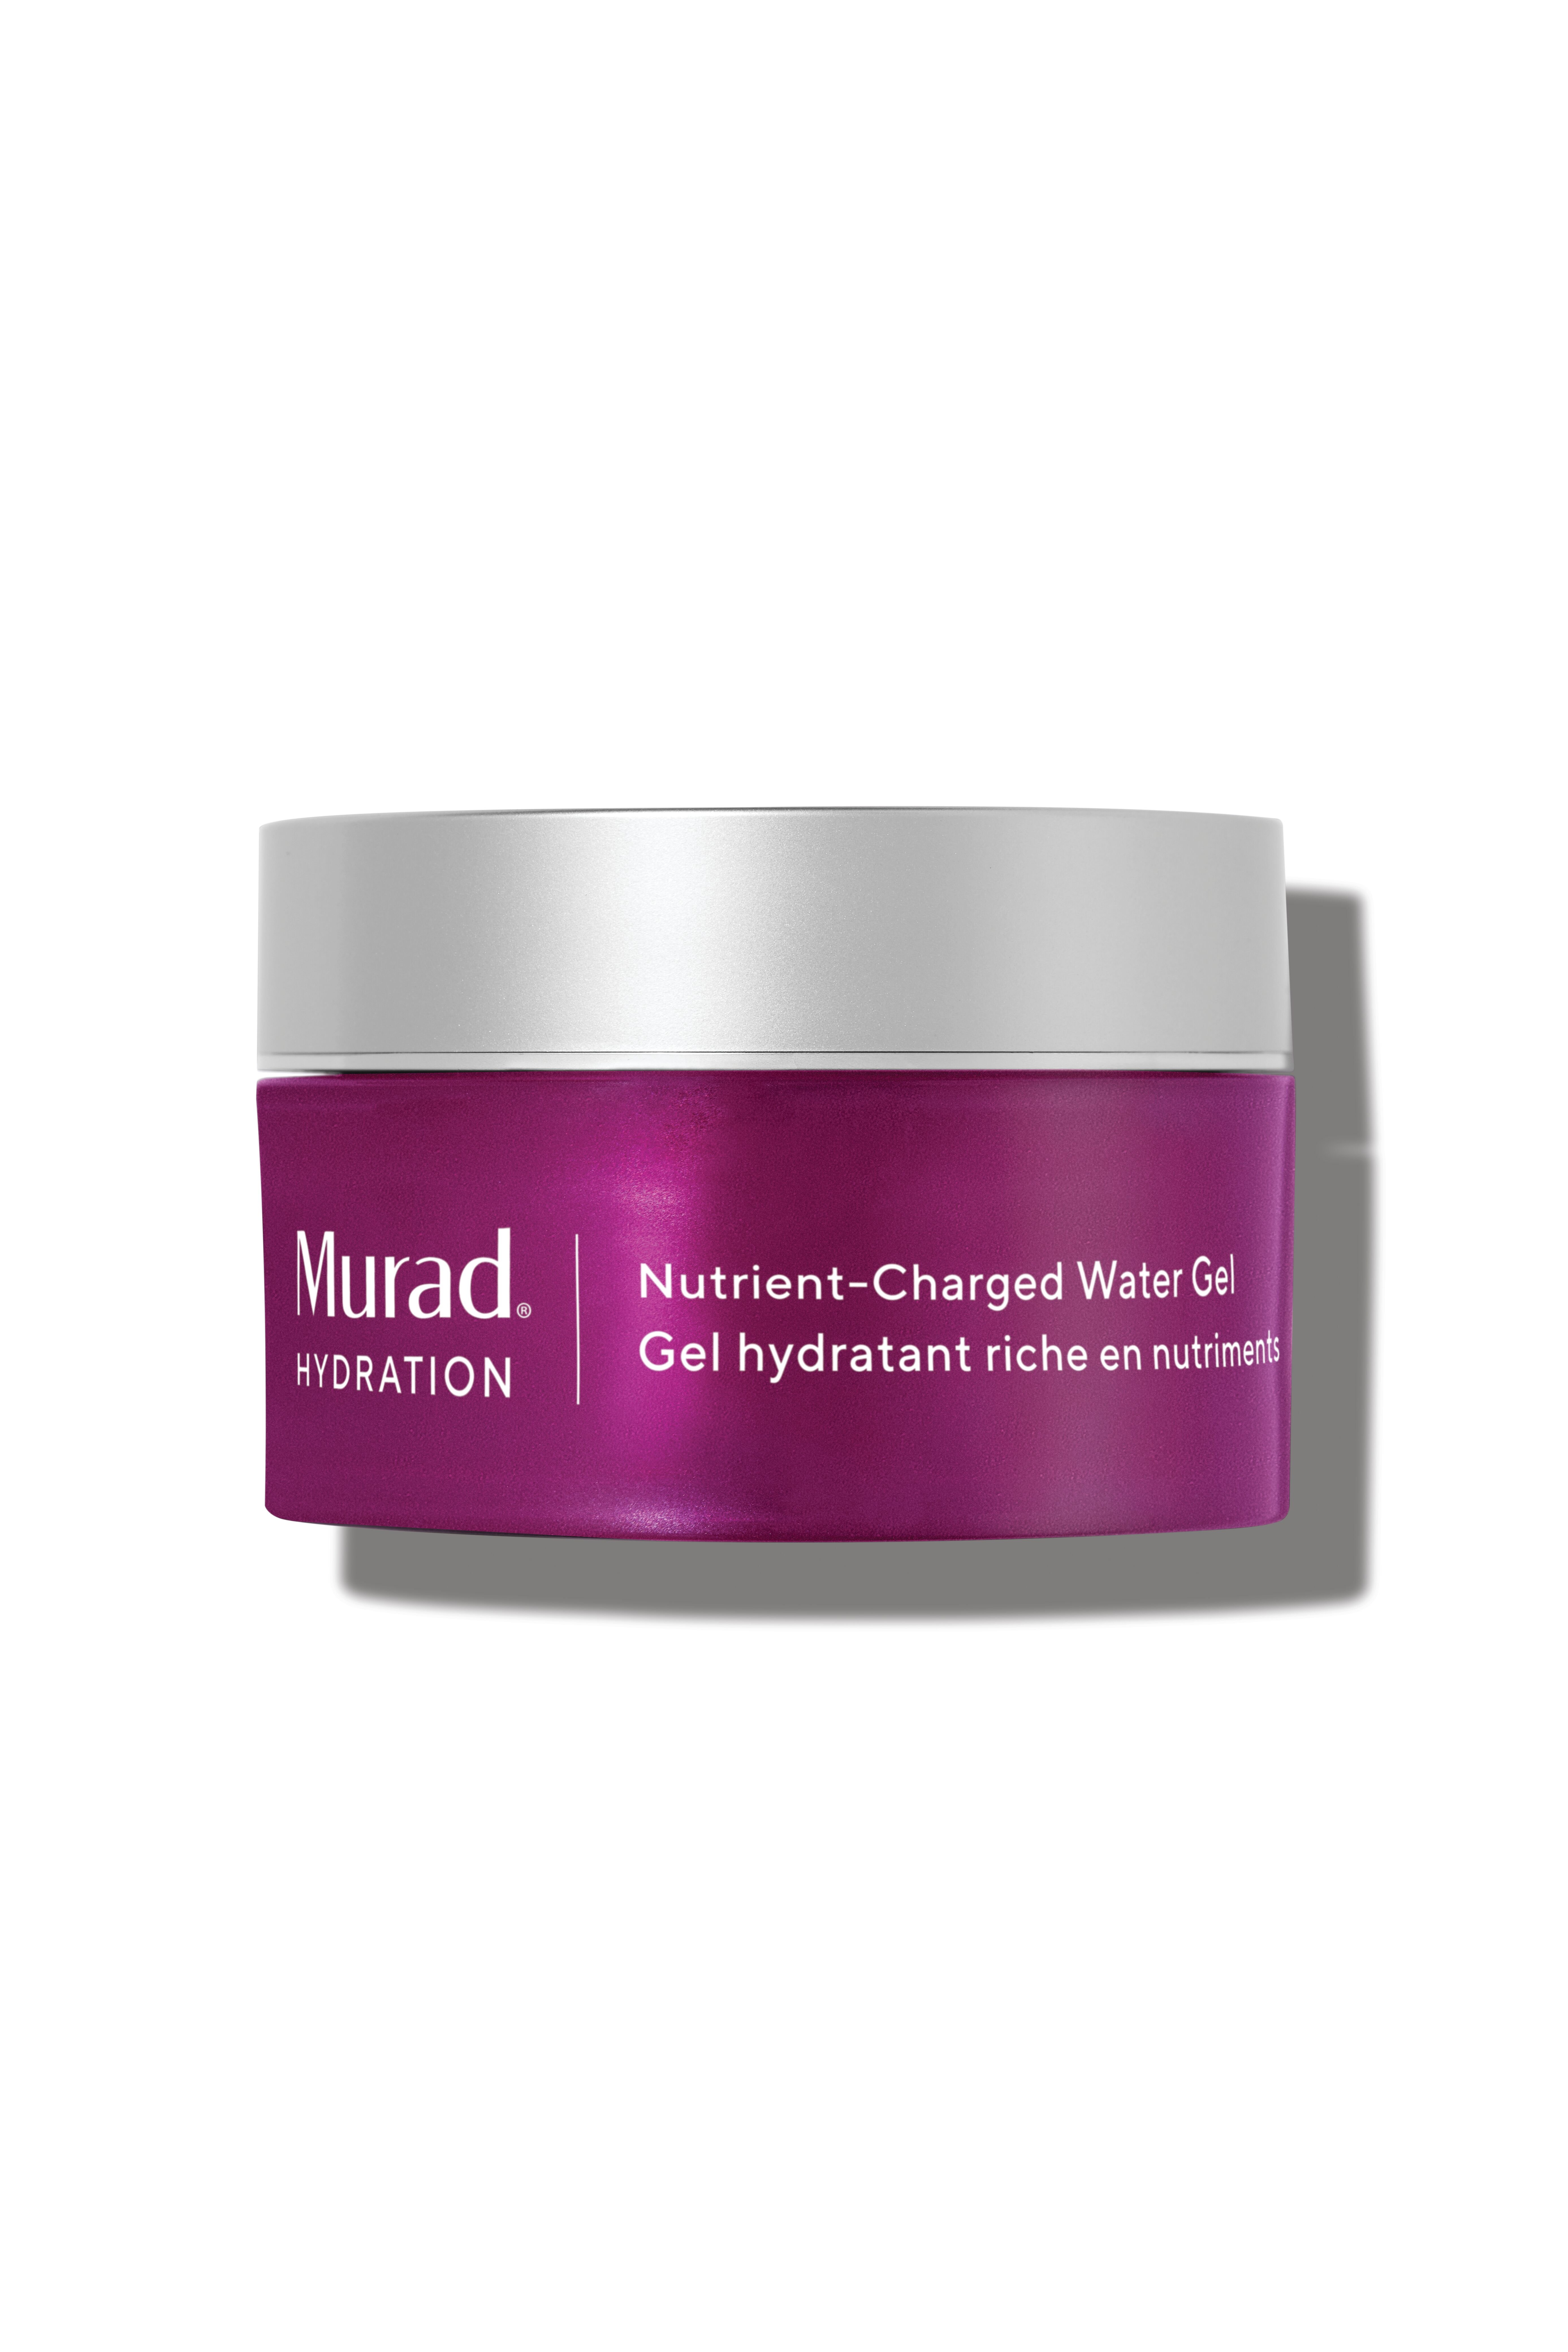 Murad - Hydration Nutrient-Charged Water Gel 50 ml